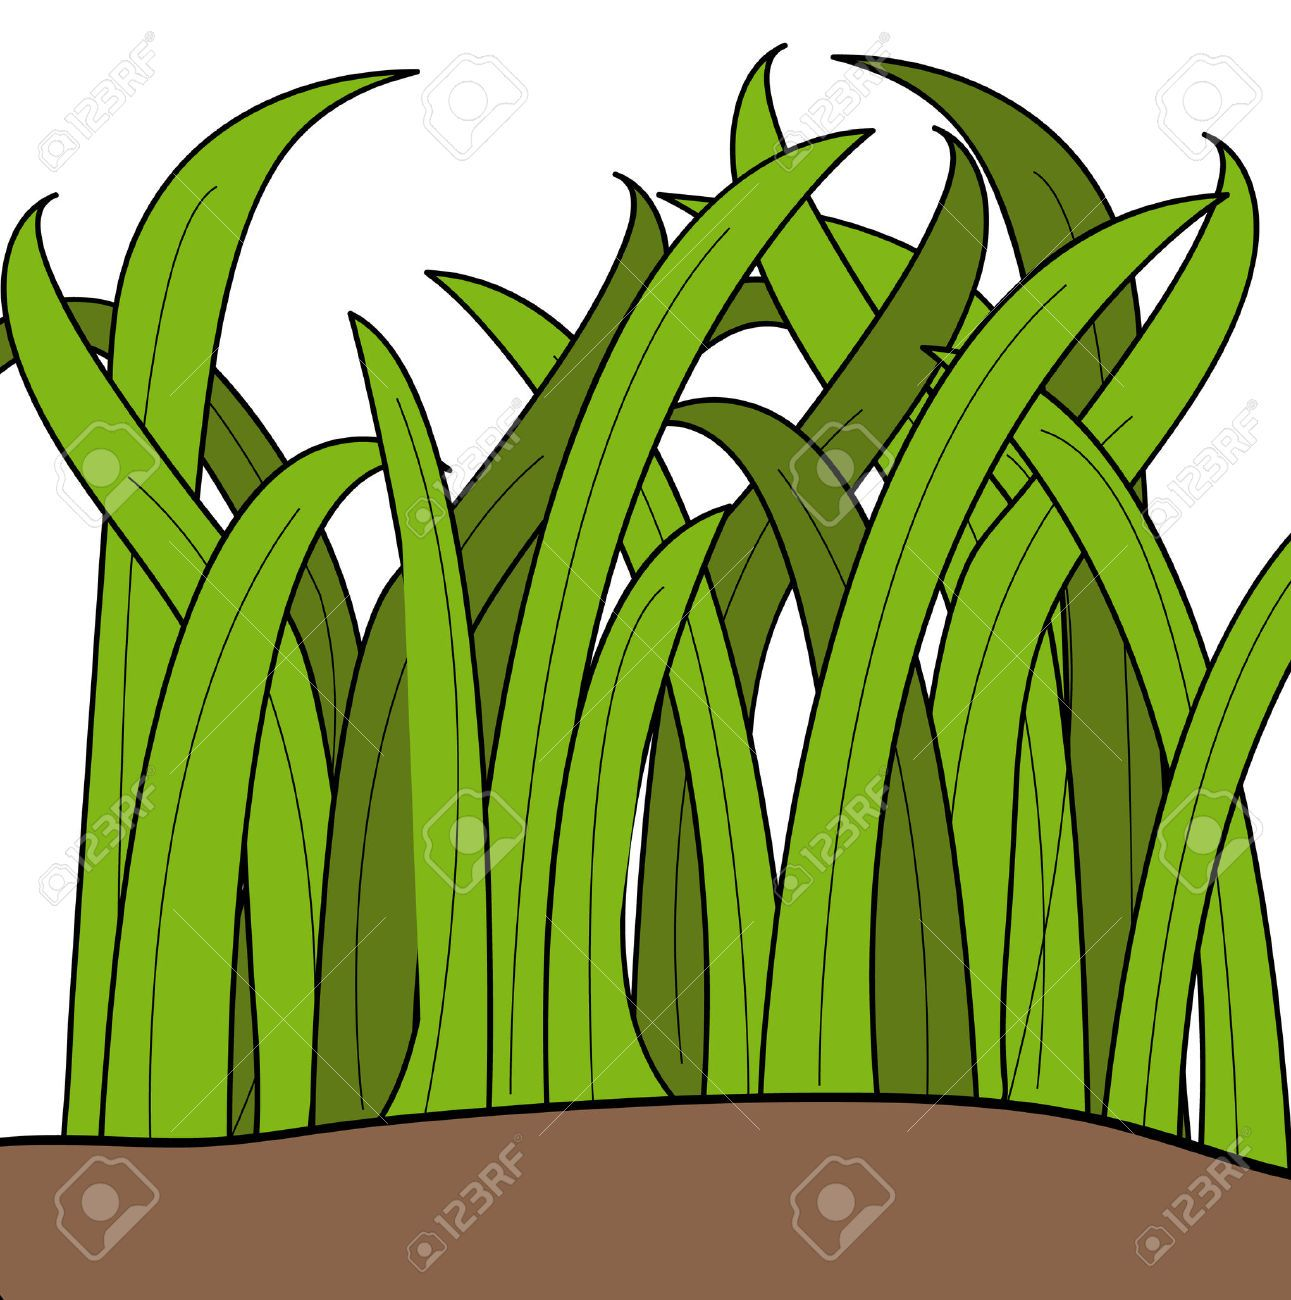 Pictures of tall grass with flowers clipart image free library tall grass clipart - Google Search | Tall Grass | Grass ... image free library